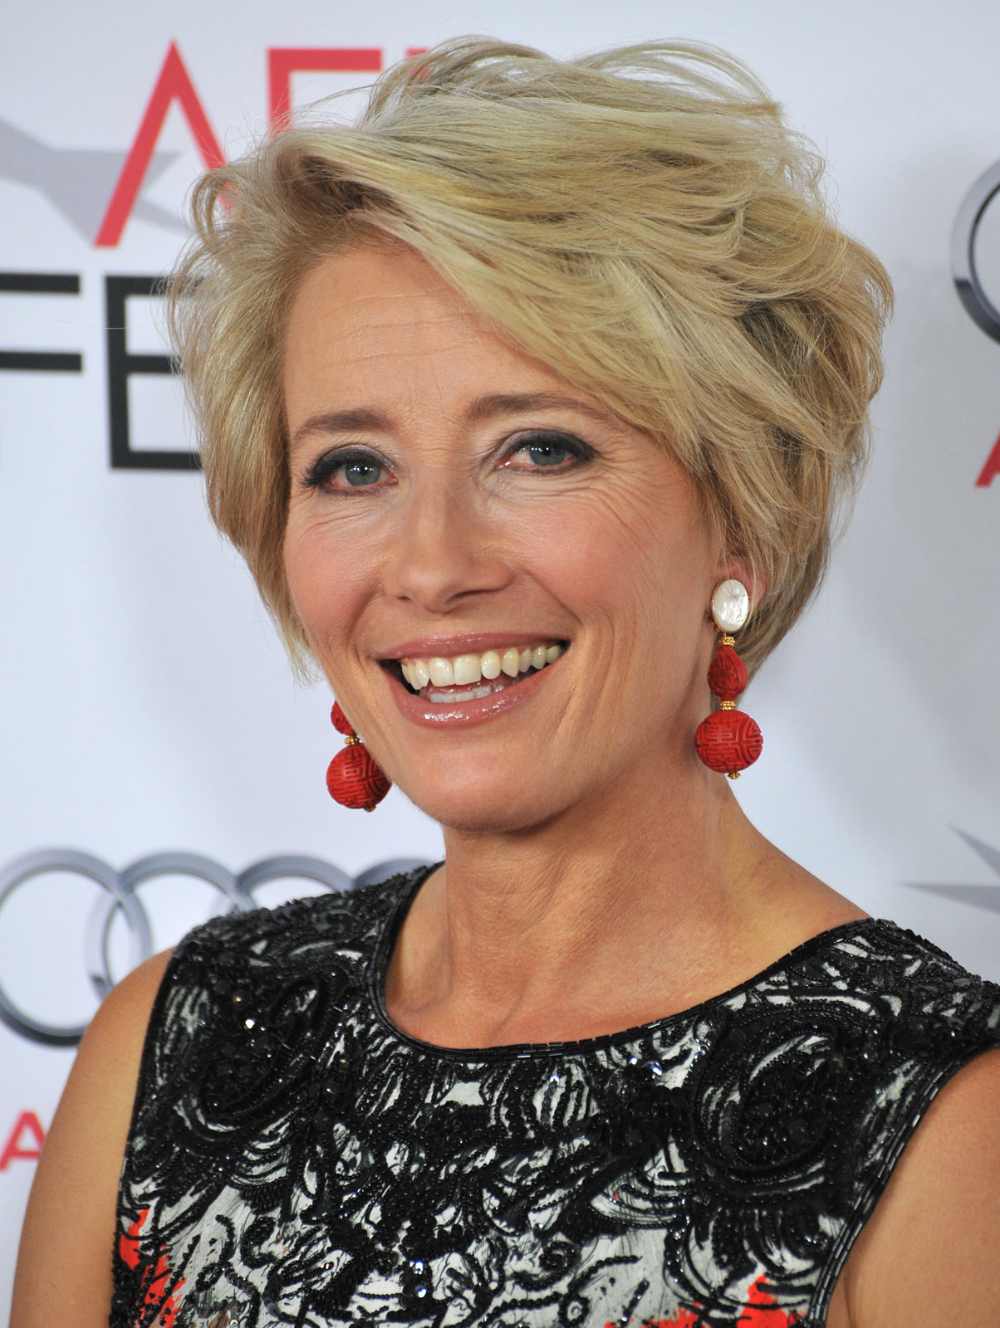 Emma Thompson  Biography, Movies, & Facts in 12  Emma thompson